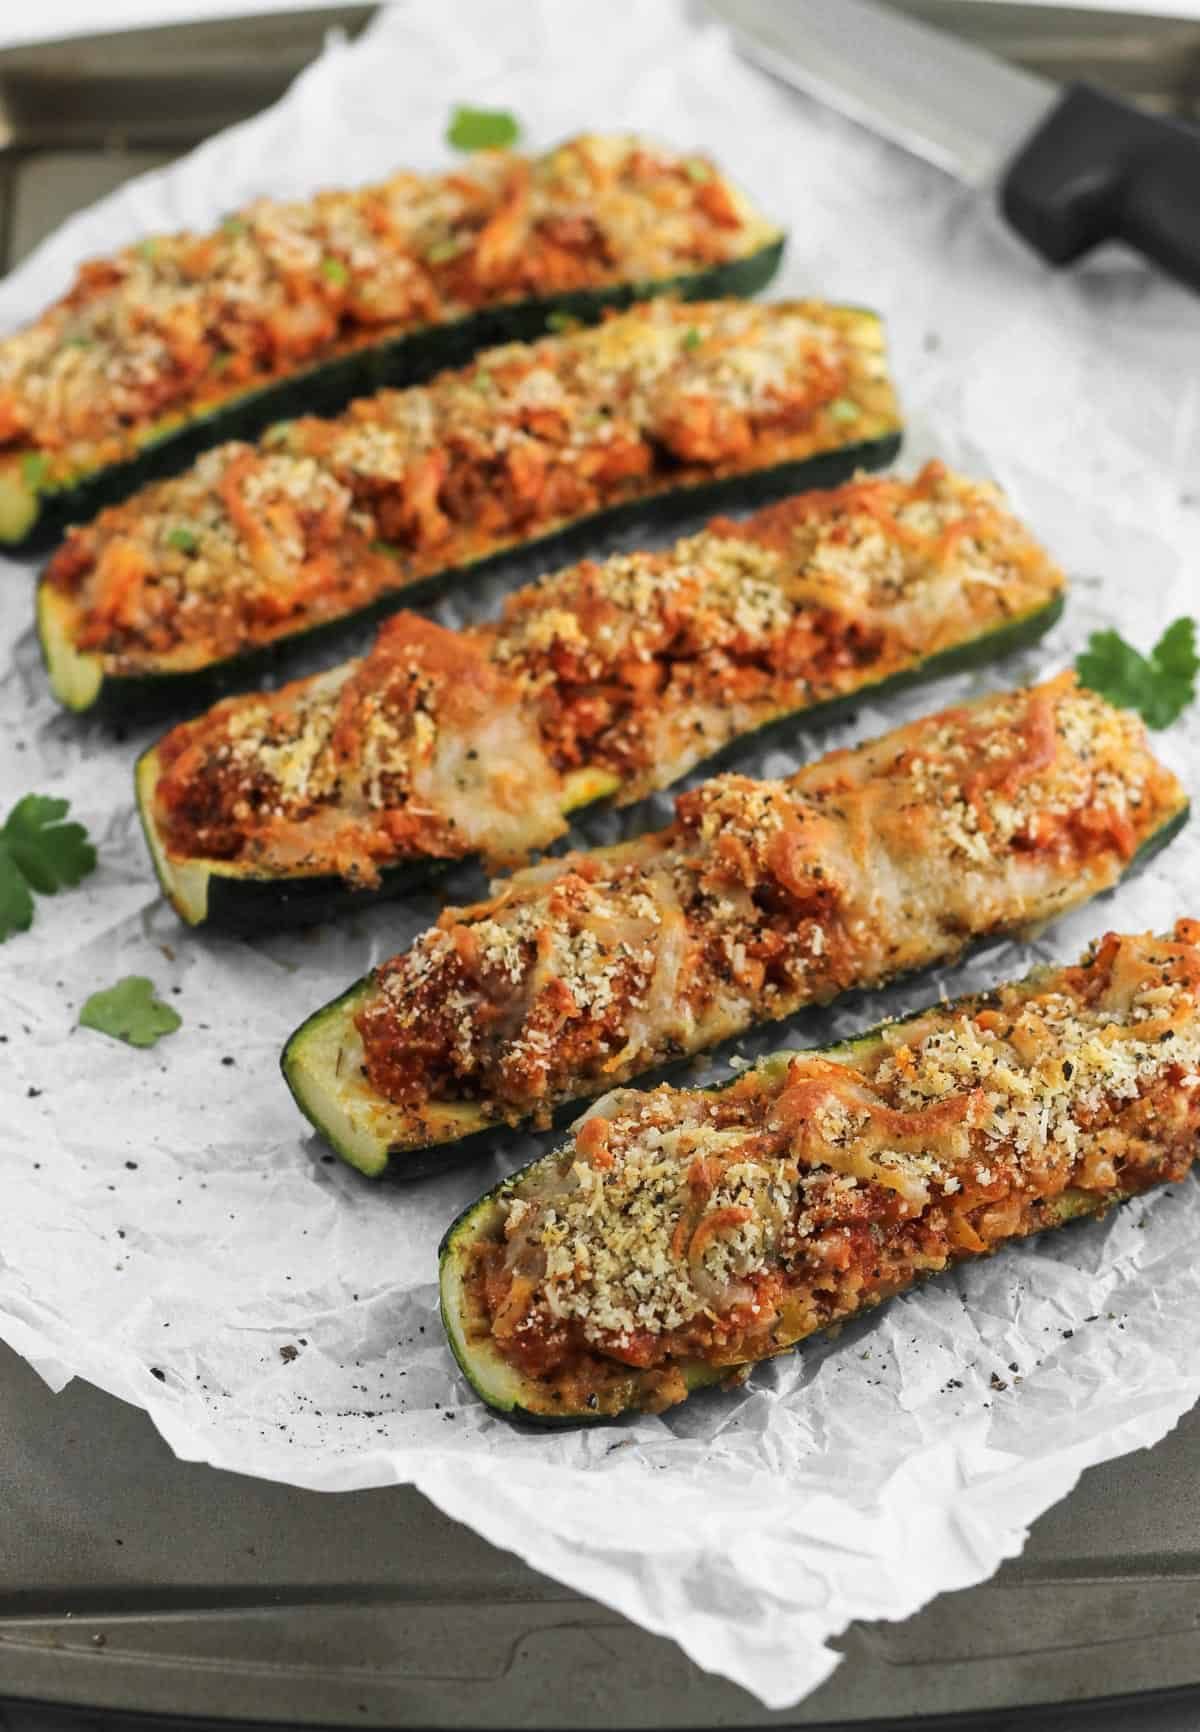 Italian zucchini arranged on a baking tray layered with parchment paper and parsley garnish.